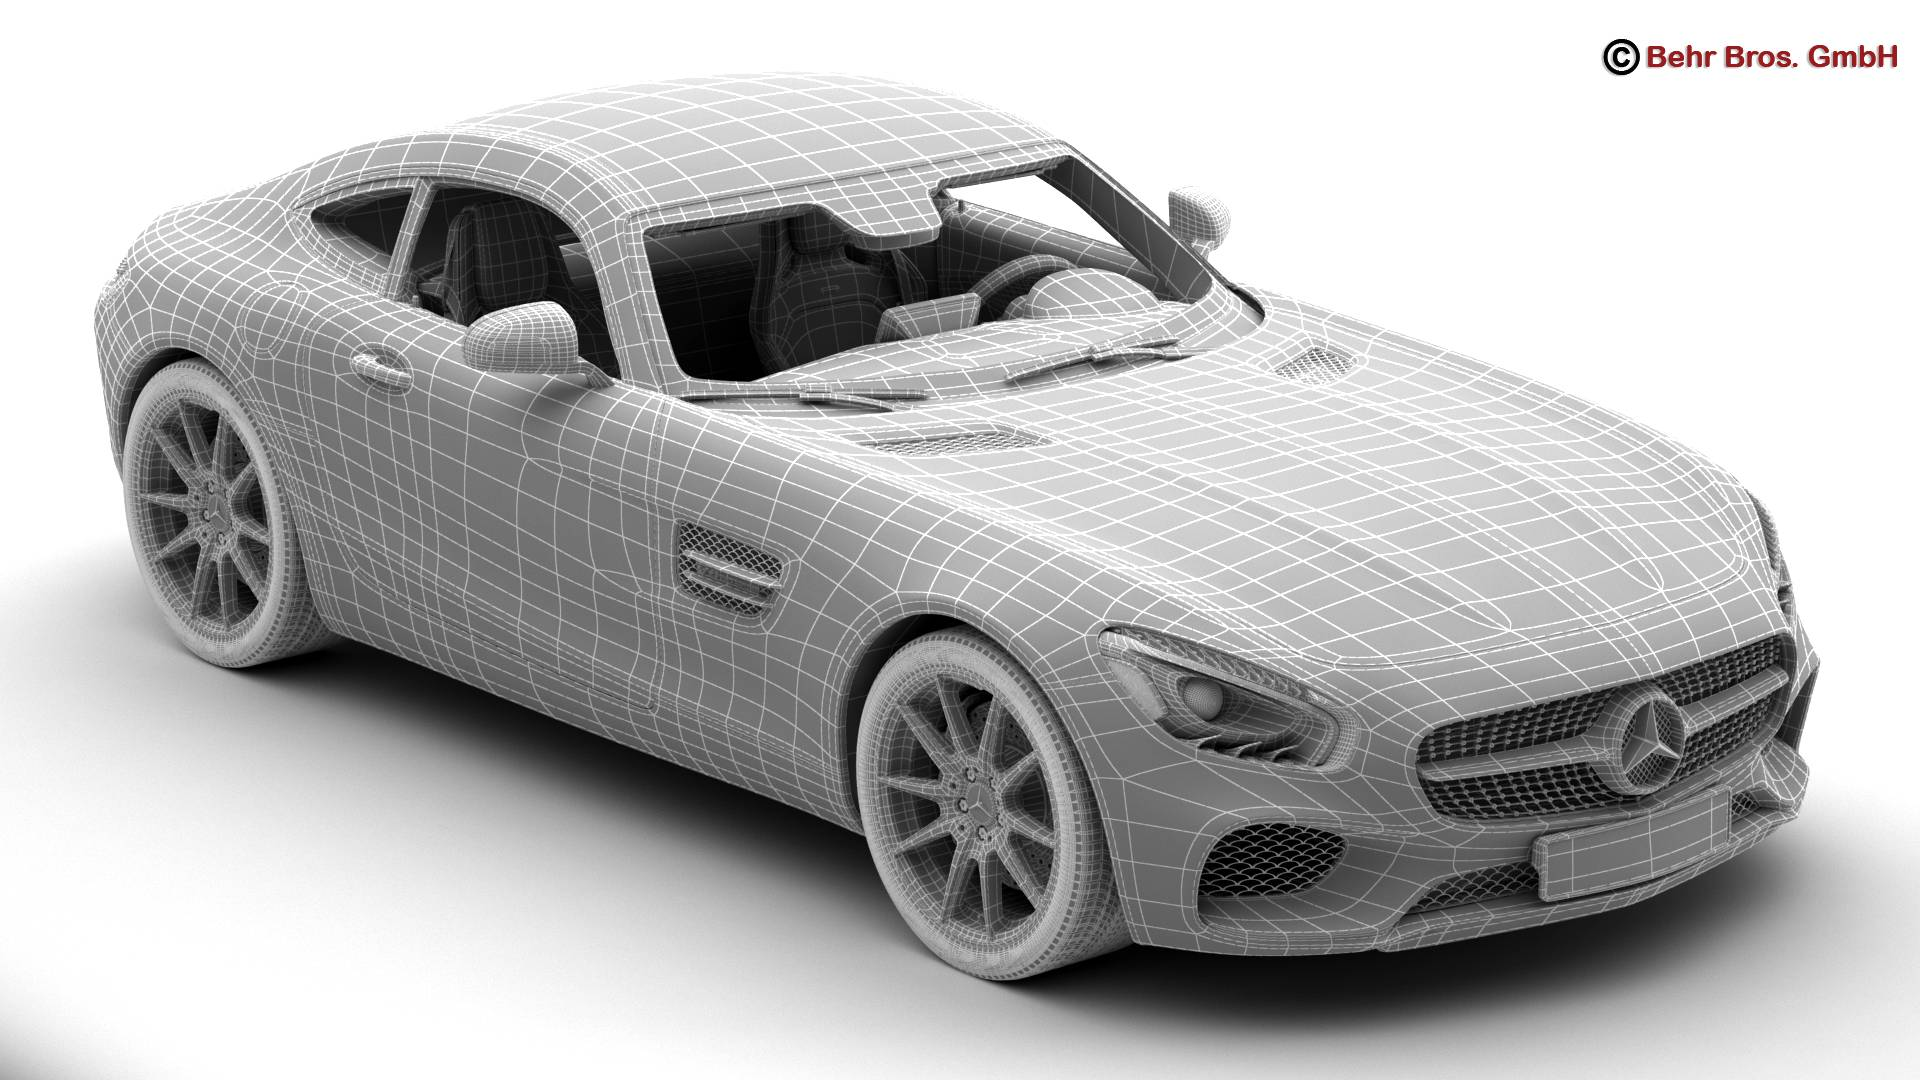 mercedes amg gt 2015 eu and us version 3d model 3ds max fbx c4d lwo ma mb obj 210127